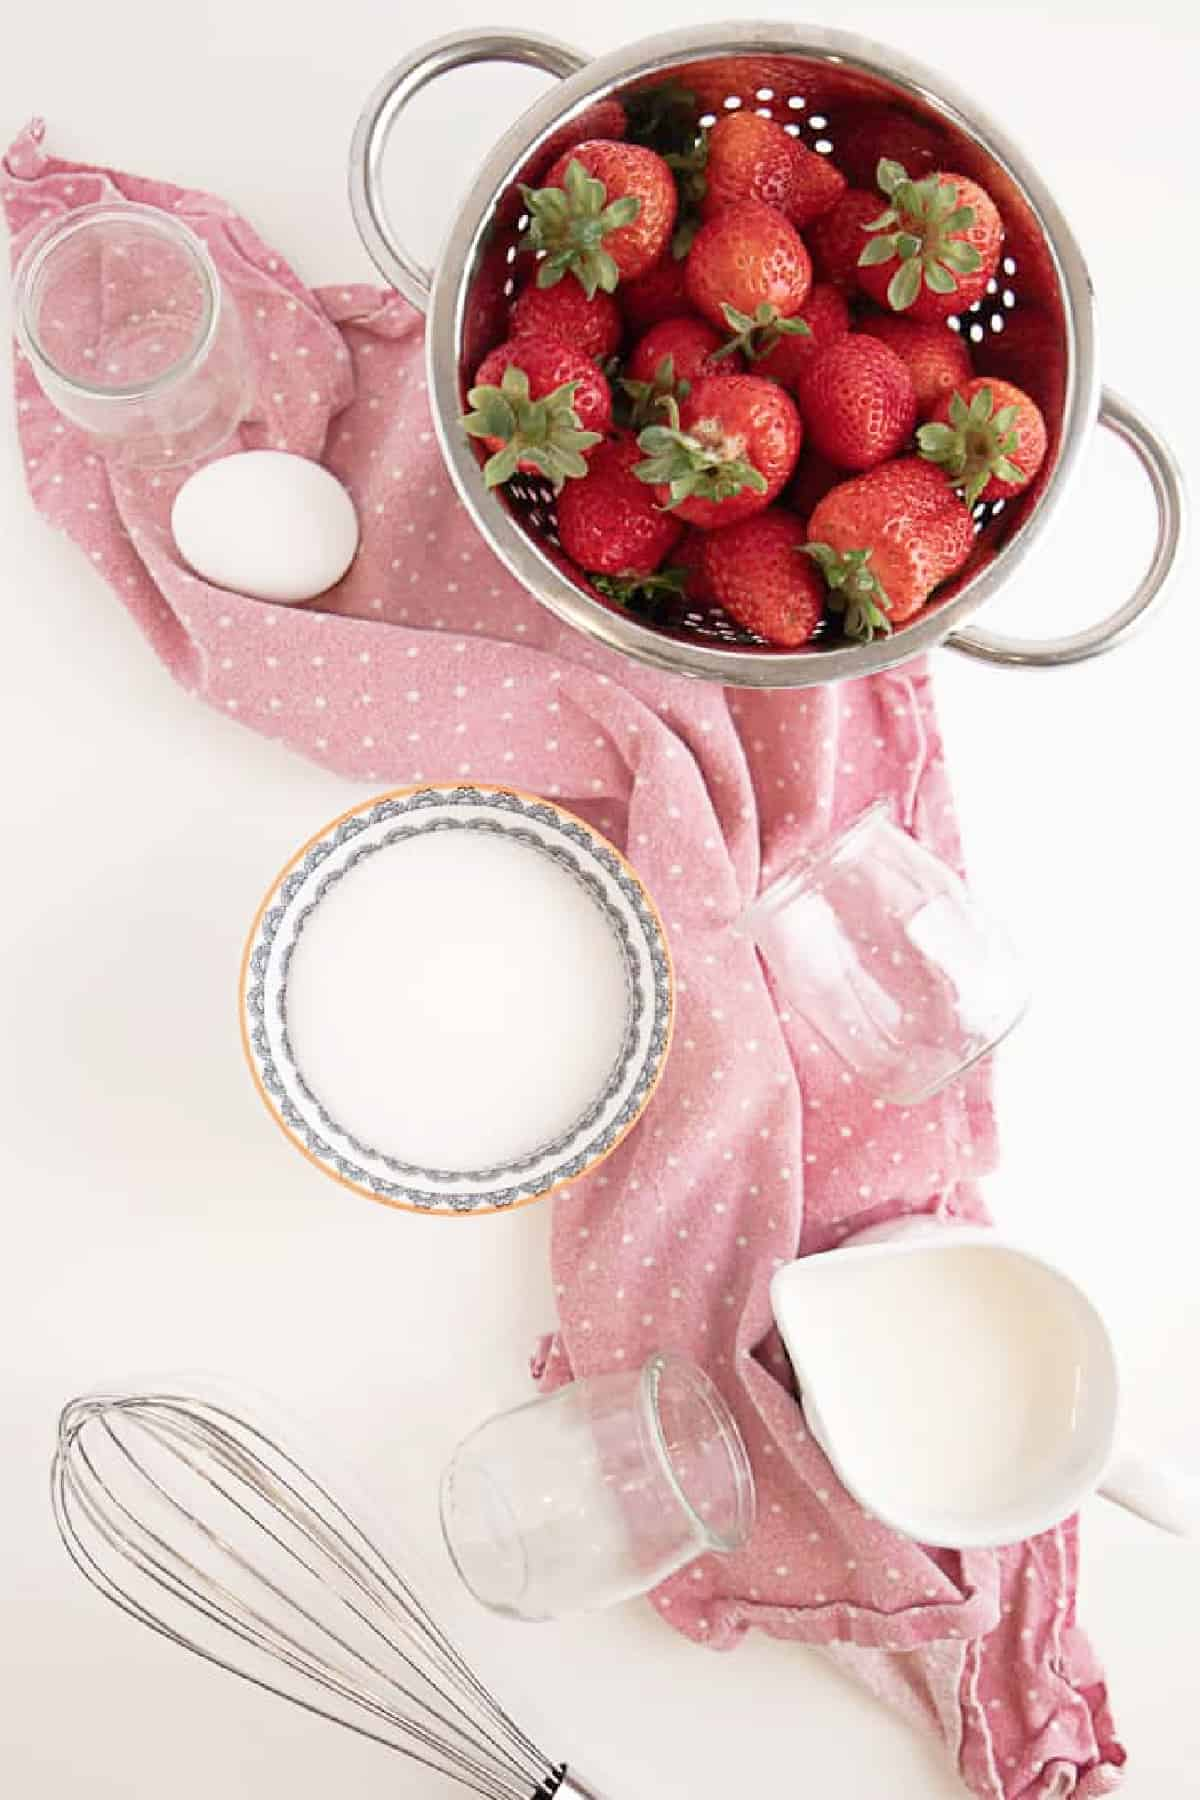 Overhead shot of ingredients for strawberry mousse